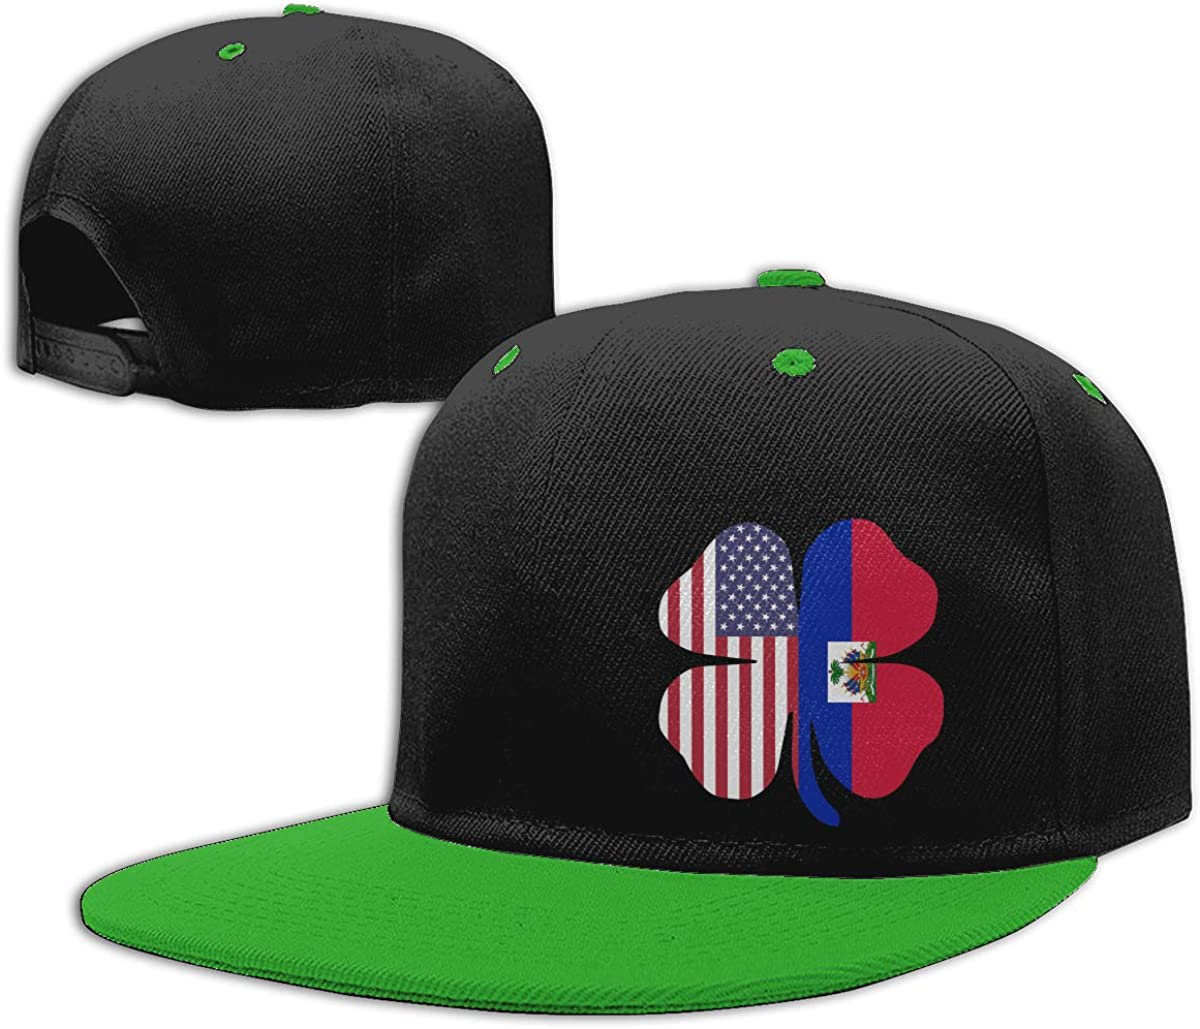 NMG-01 Women Men Dad Hat American Haitian Shamrock Shape Printed Flat Bill Baseball Caps